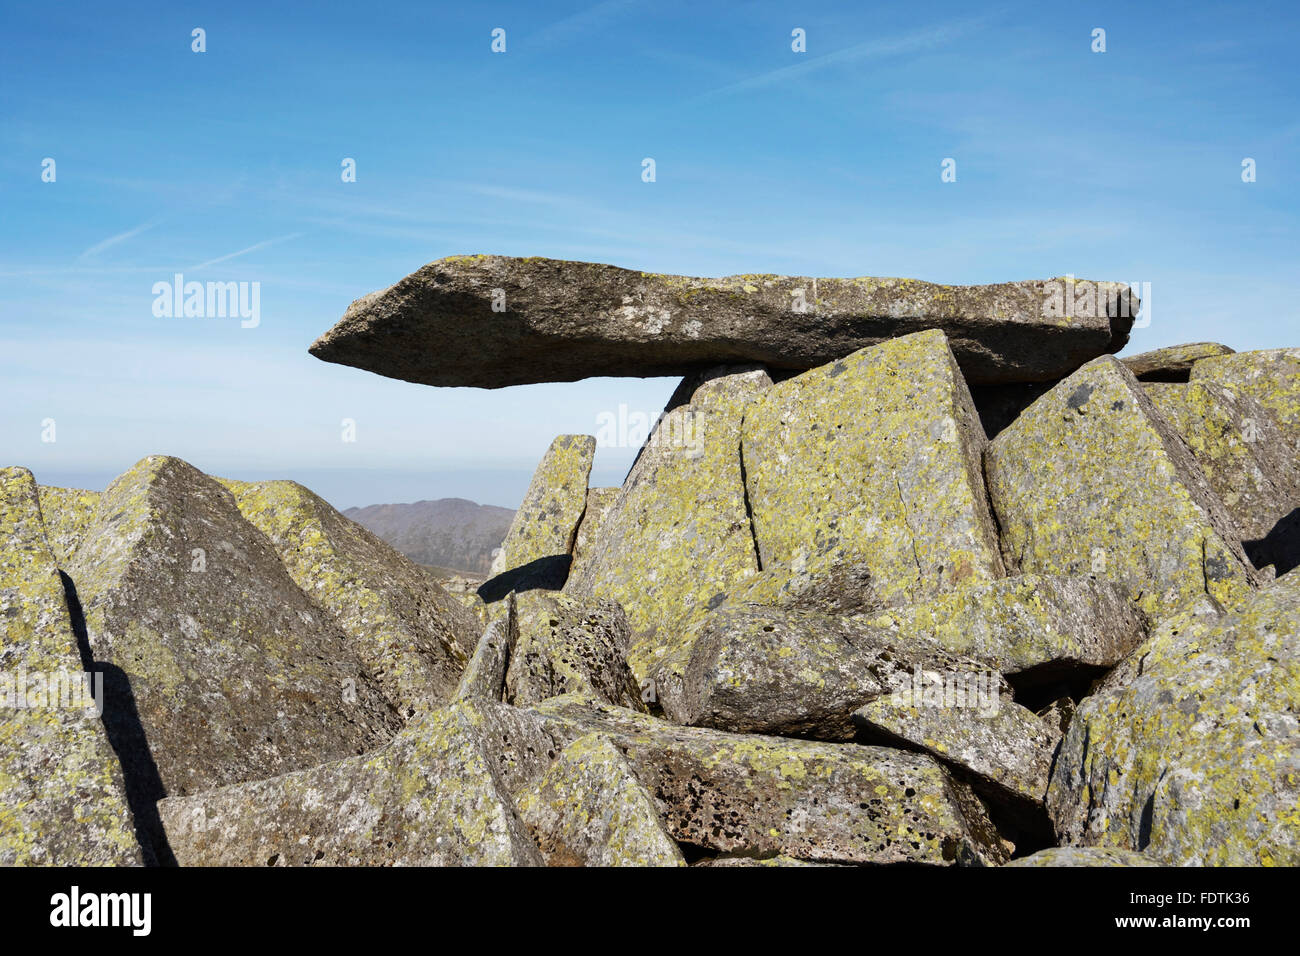 The Cantilever rock near the summit of Glyder Fach in Snowdonia - Stock Image